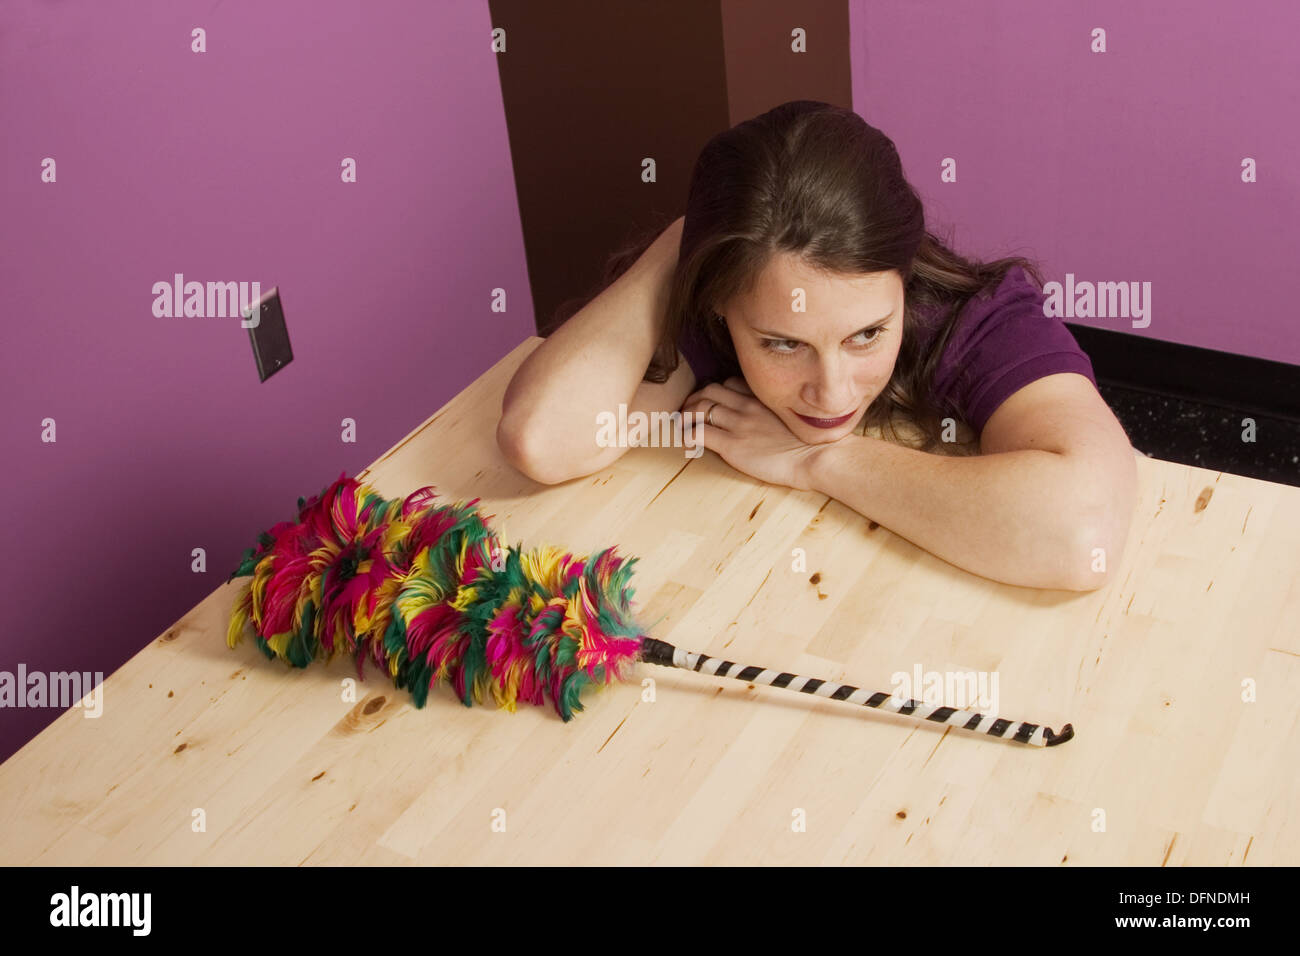 Young woman sitting next to a feather duster - Stock Image